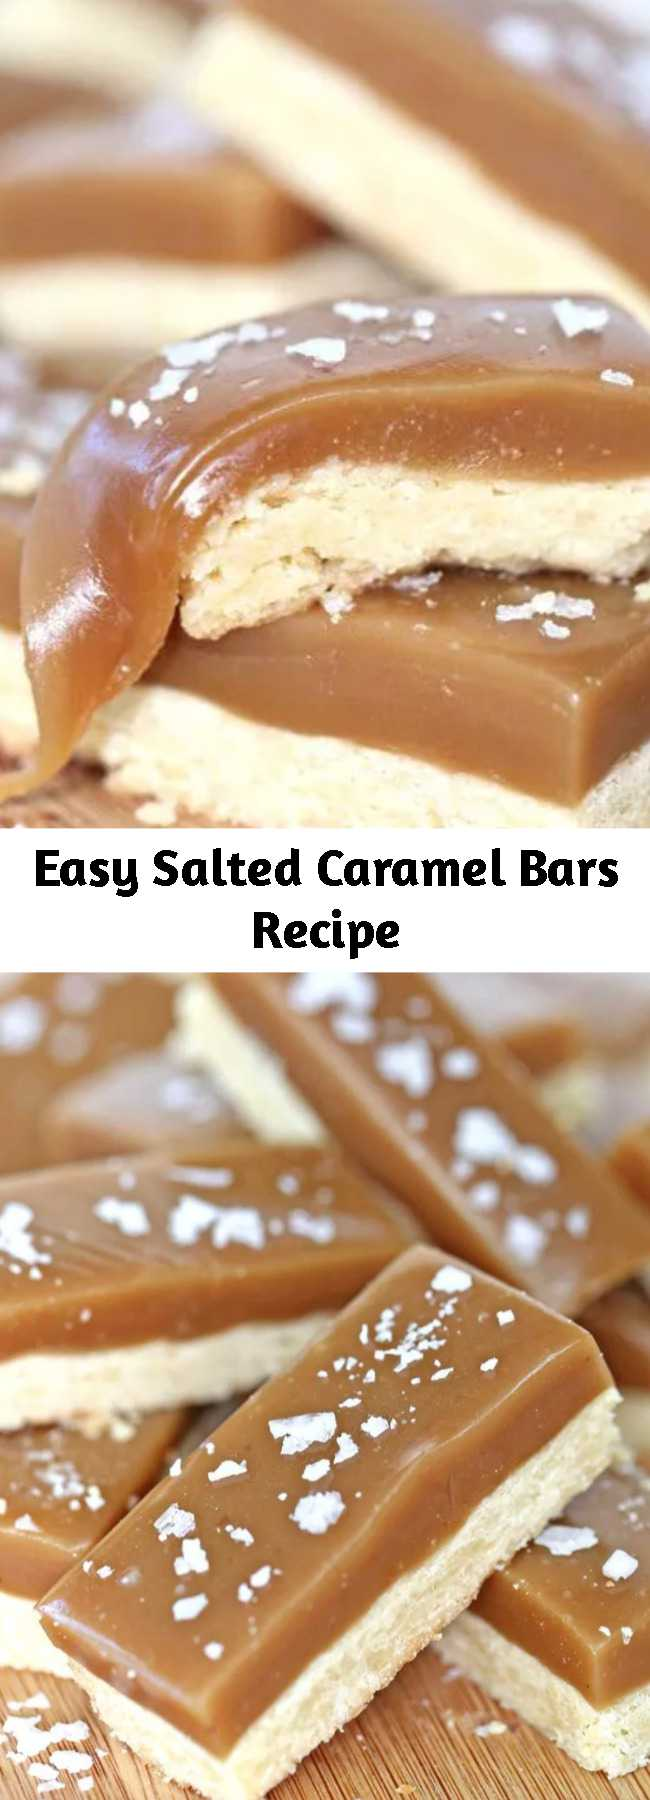 Easy Salted Caramel Bars Recipe - Salted Caramel Bars have a buttery shortbread base and a topping of rich, chewy caramel. A crunchy dusting of flaked sea salt on top is the perfect finishing touch! #saltedcaramel #bars